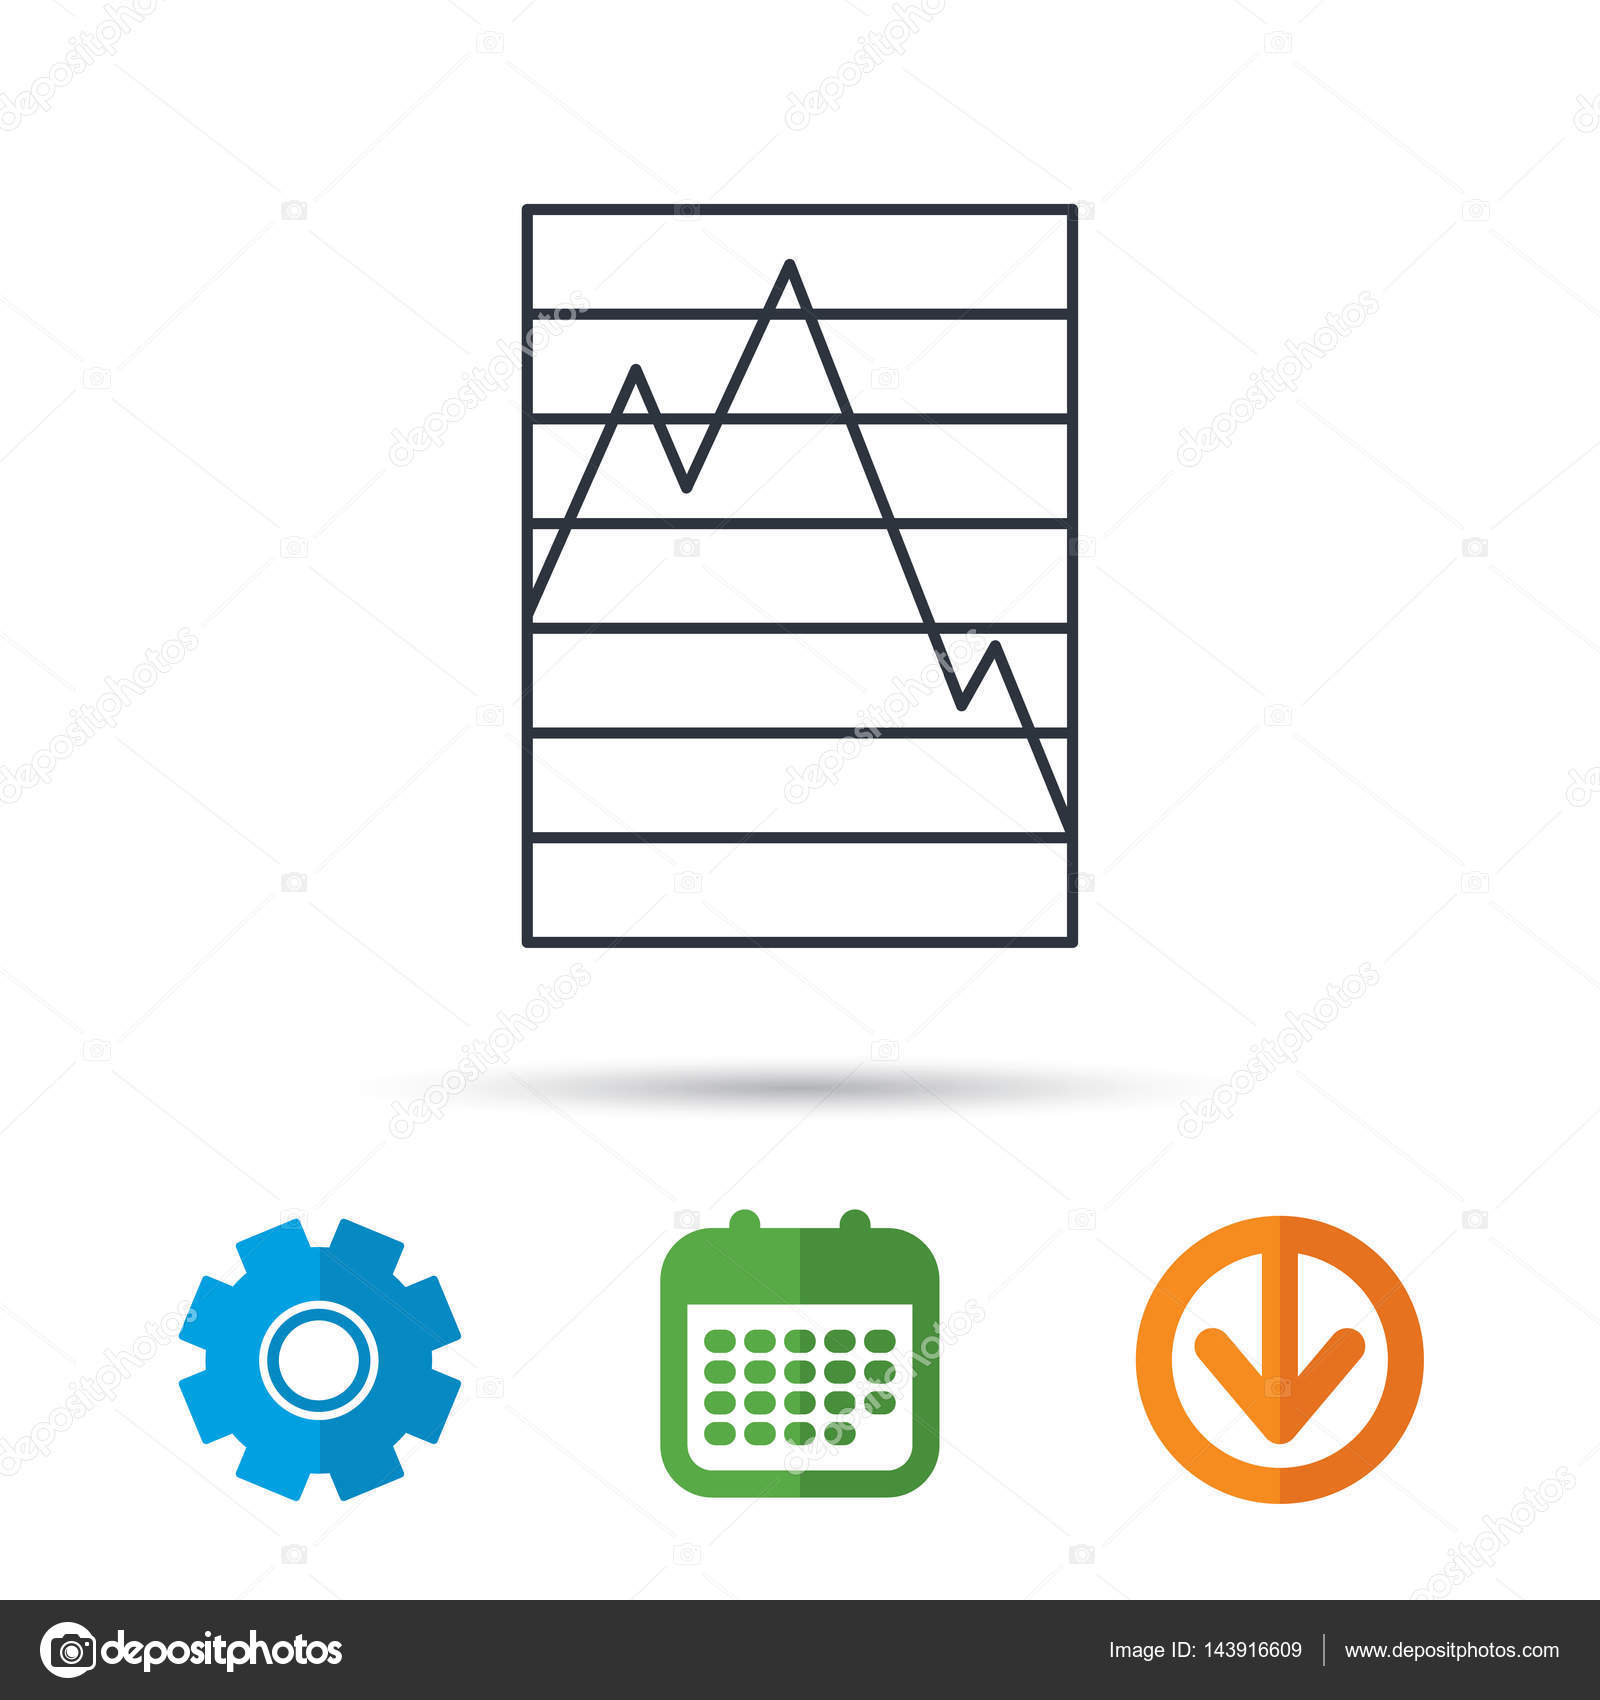 Chart icon graph diagram sign stock vector tanyastock 143916609 chart curve icon graph diagram sign demand reduction symbol calendar cogwheel and download arrow signs colored flat web icons ccuart Gallery